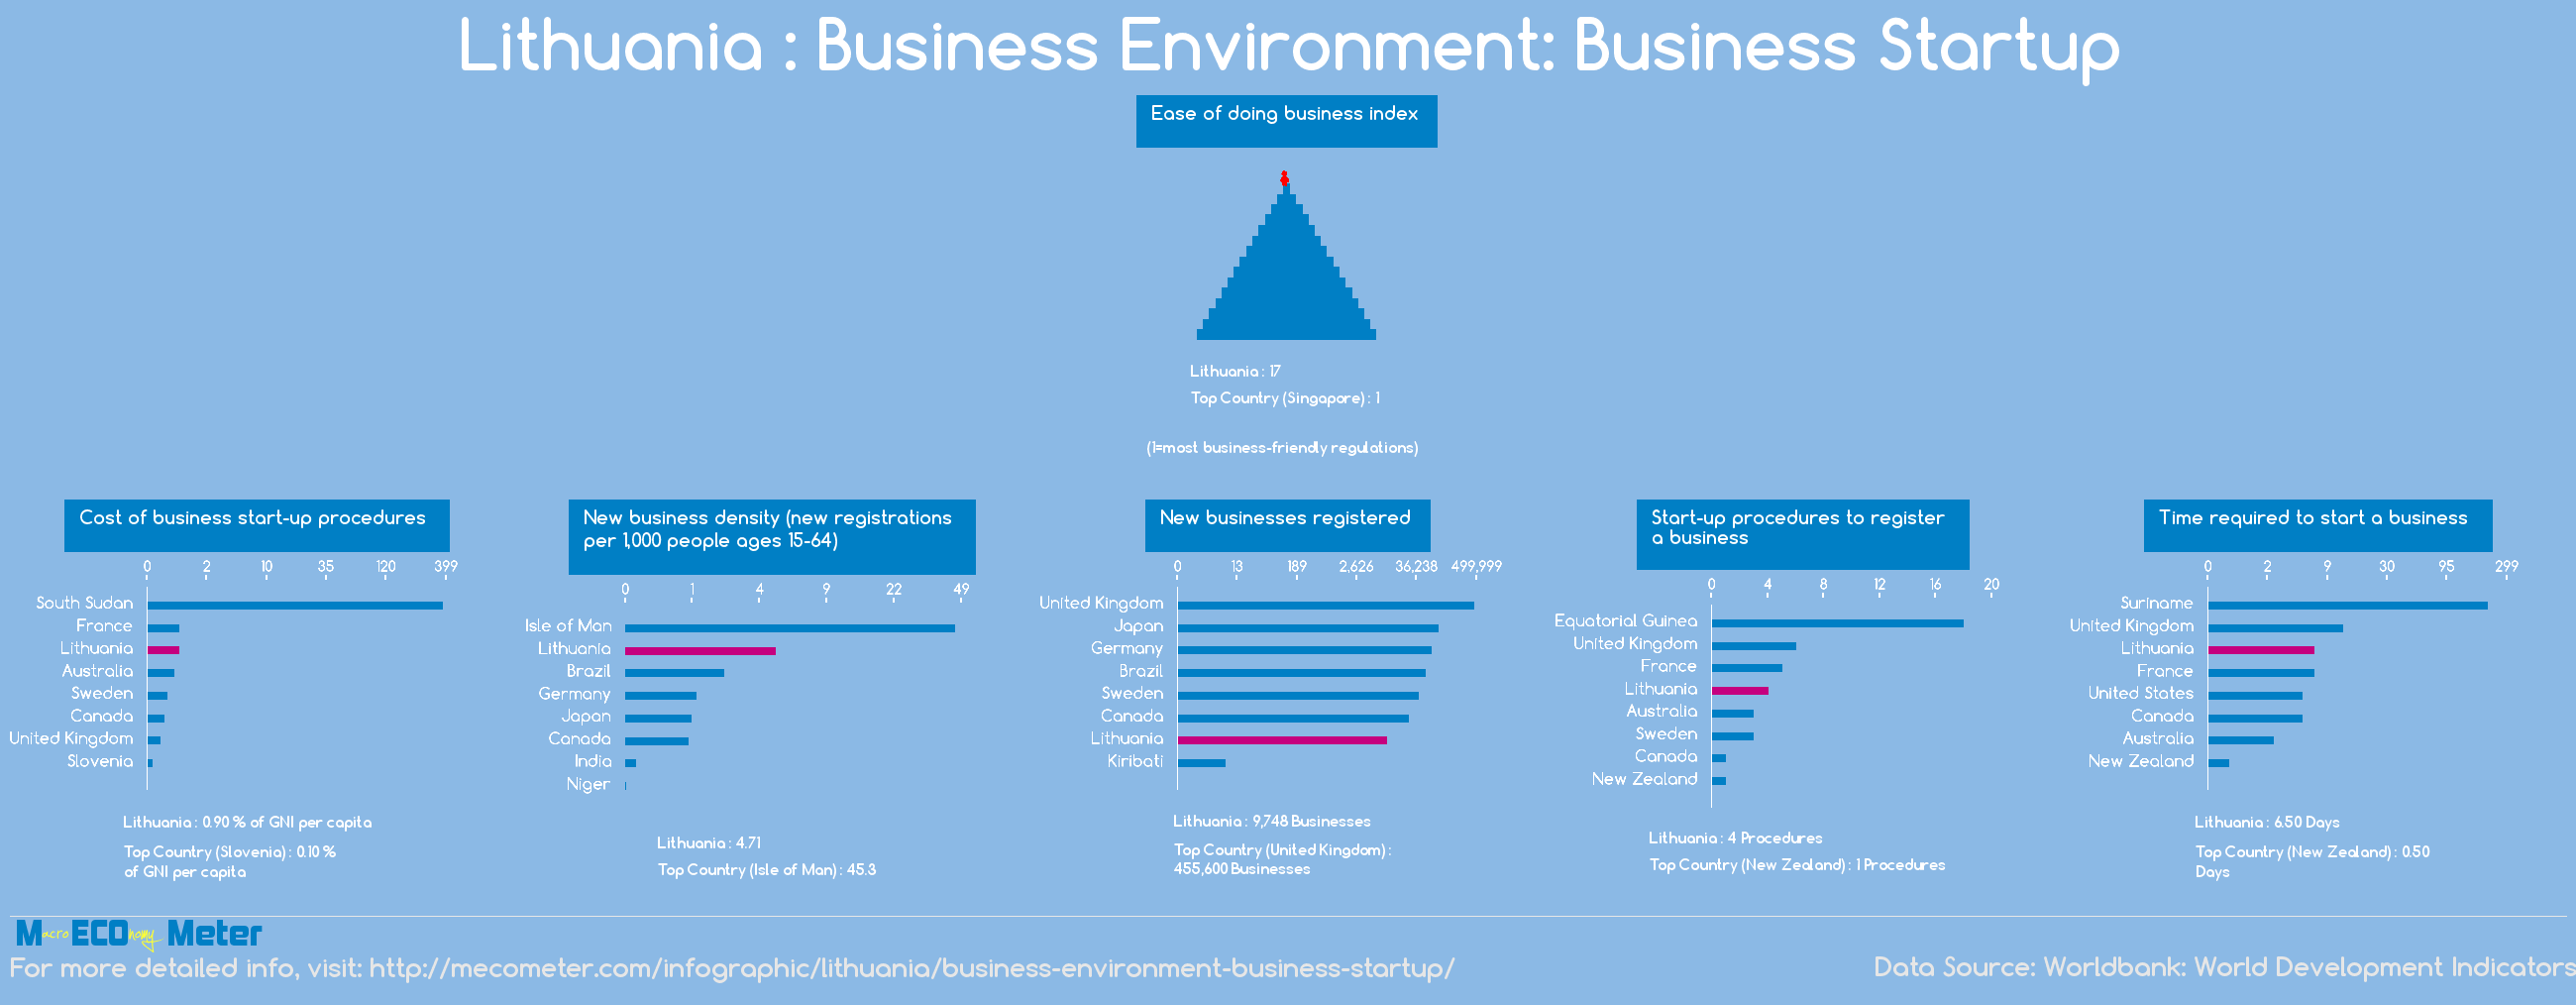 Lithuania : Business Environment: Business Startup